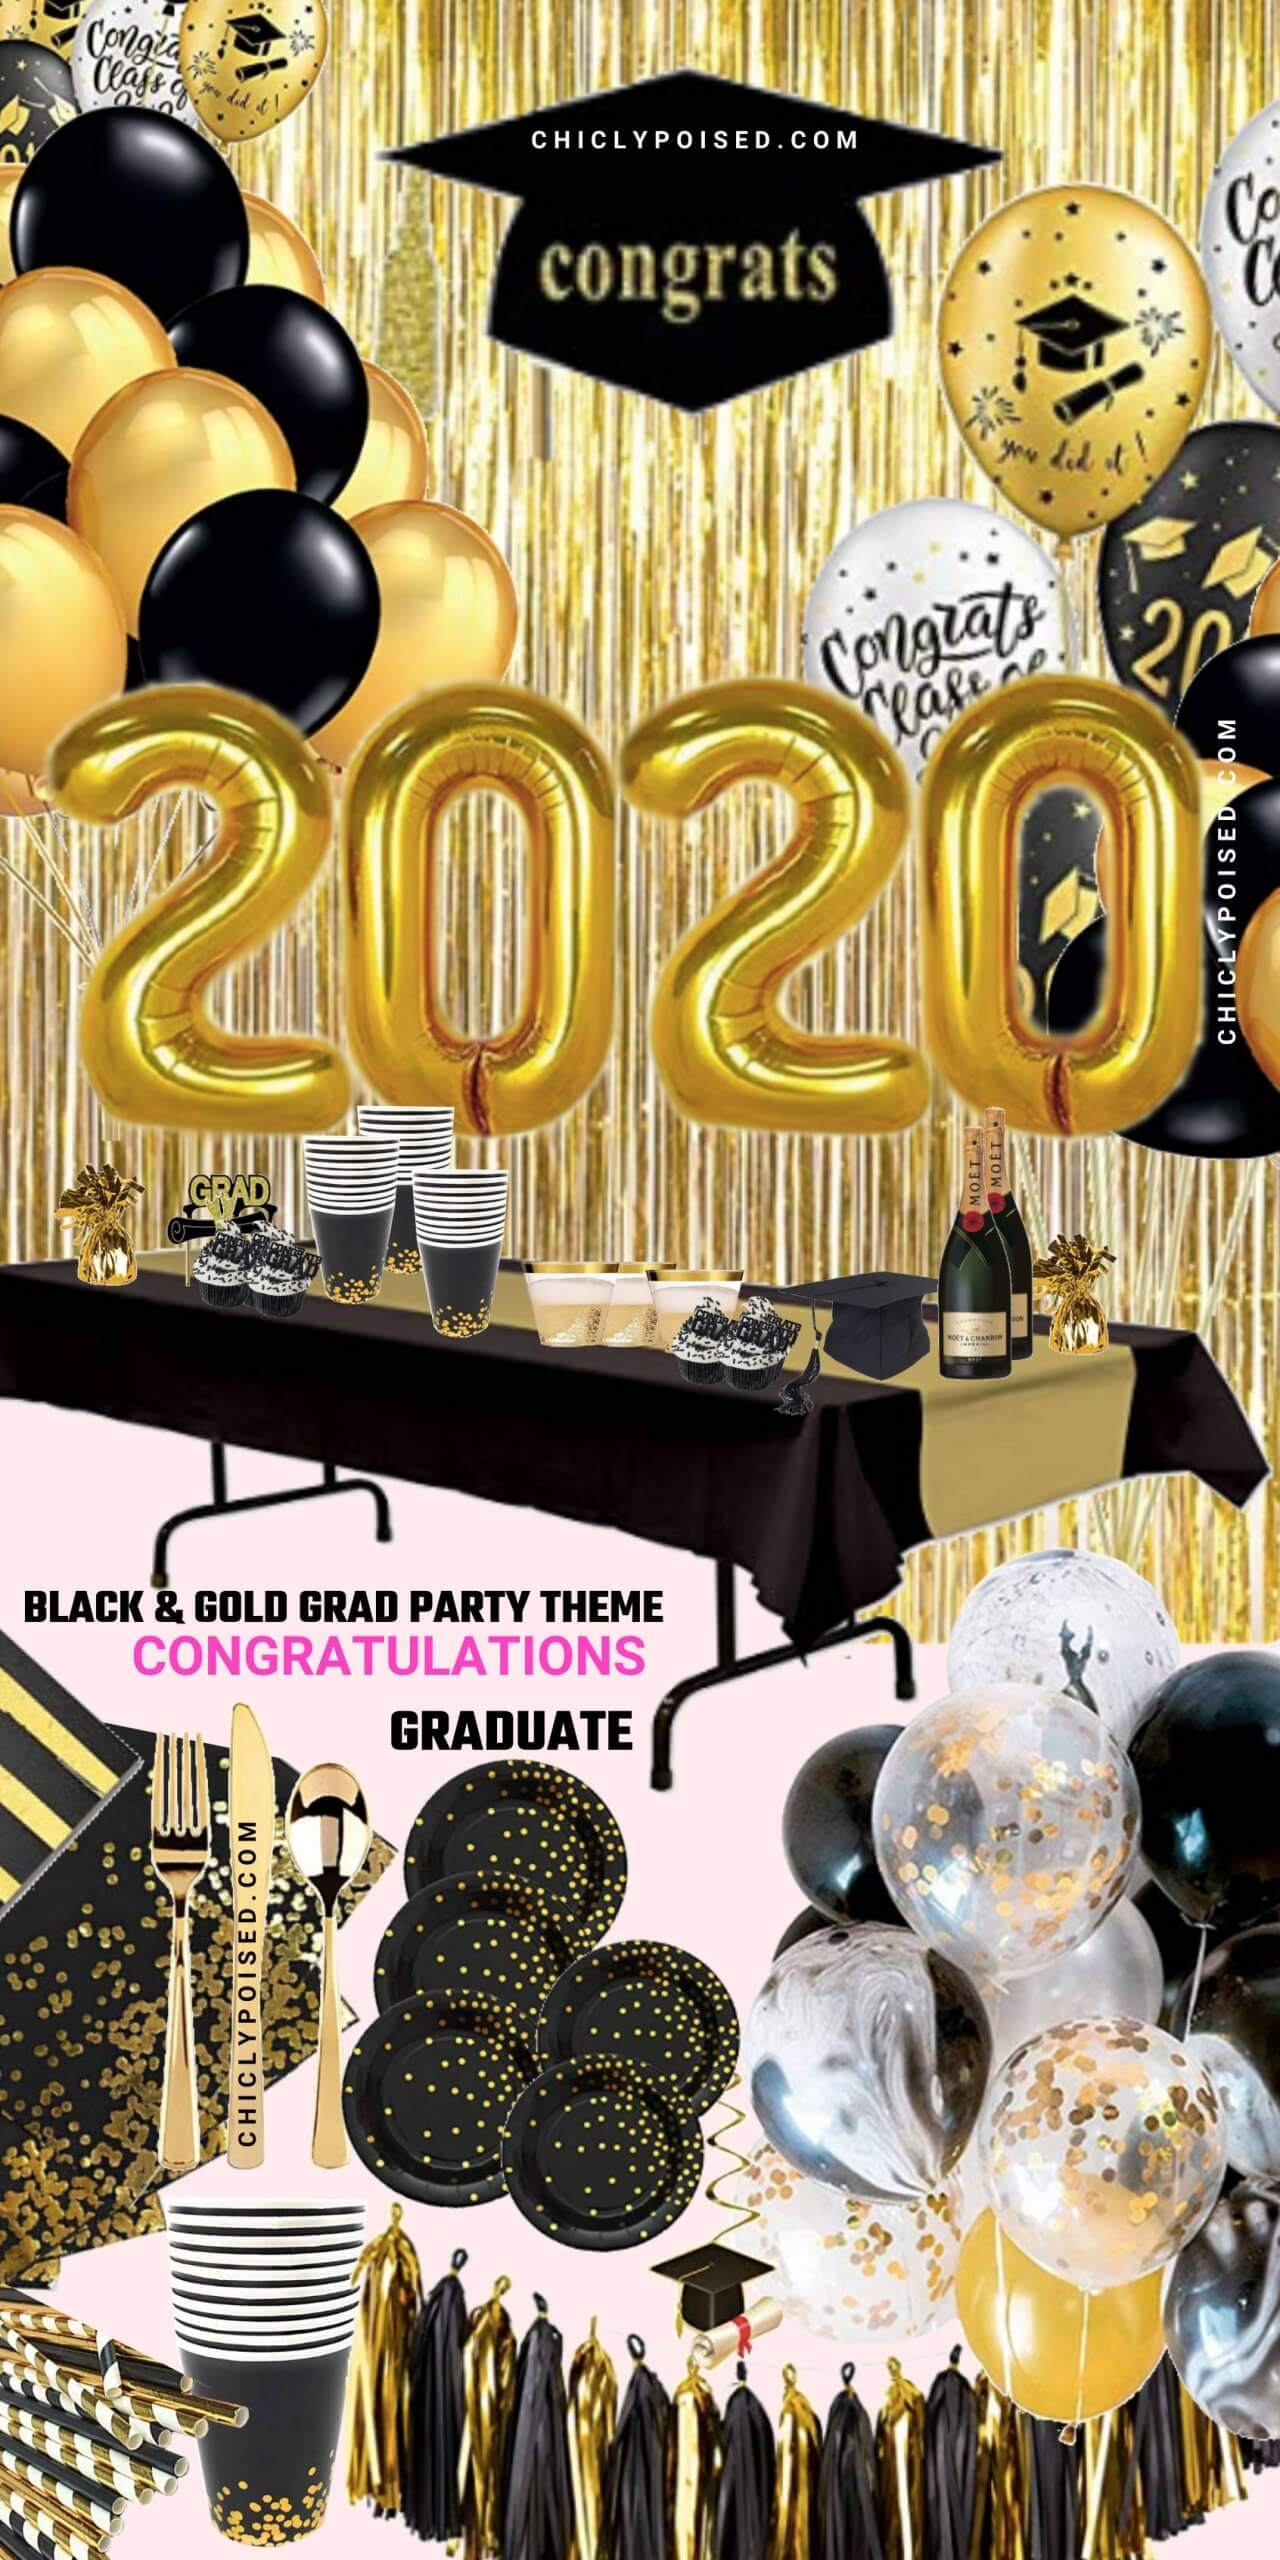 Select The Best Graduation Party Theme For Your 2020 ...